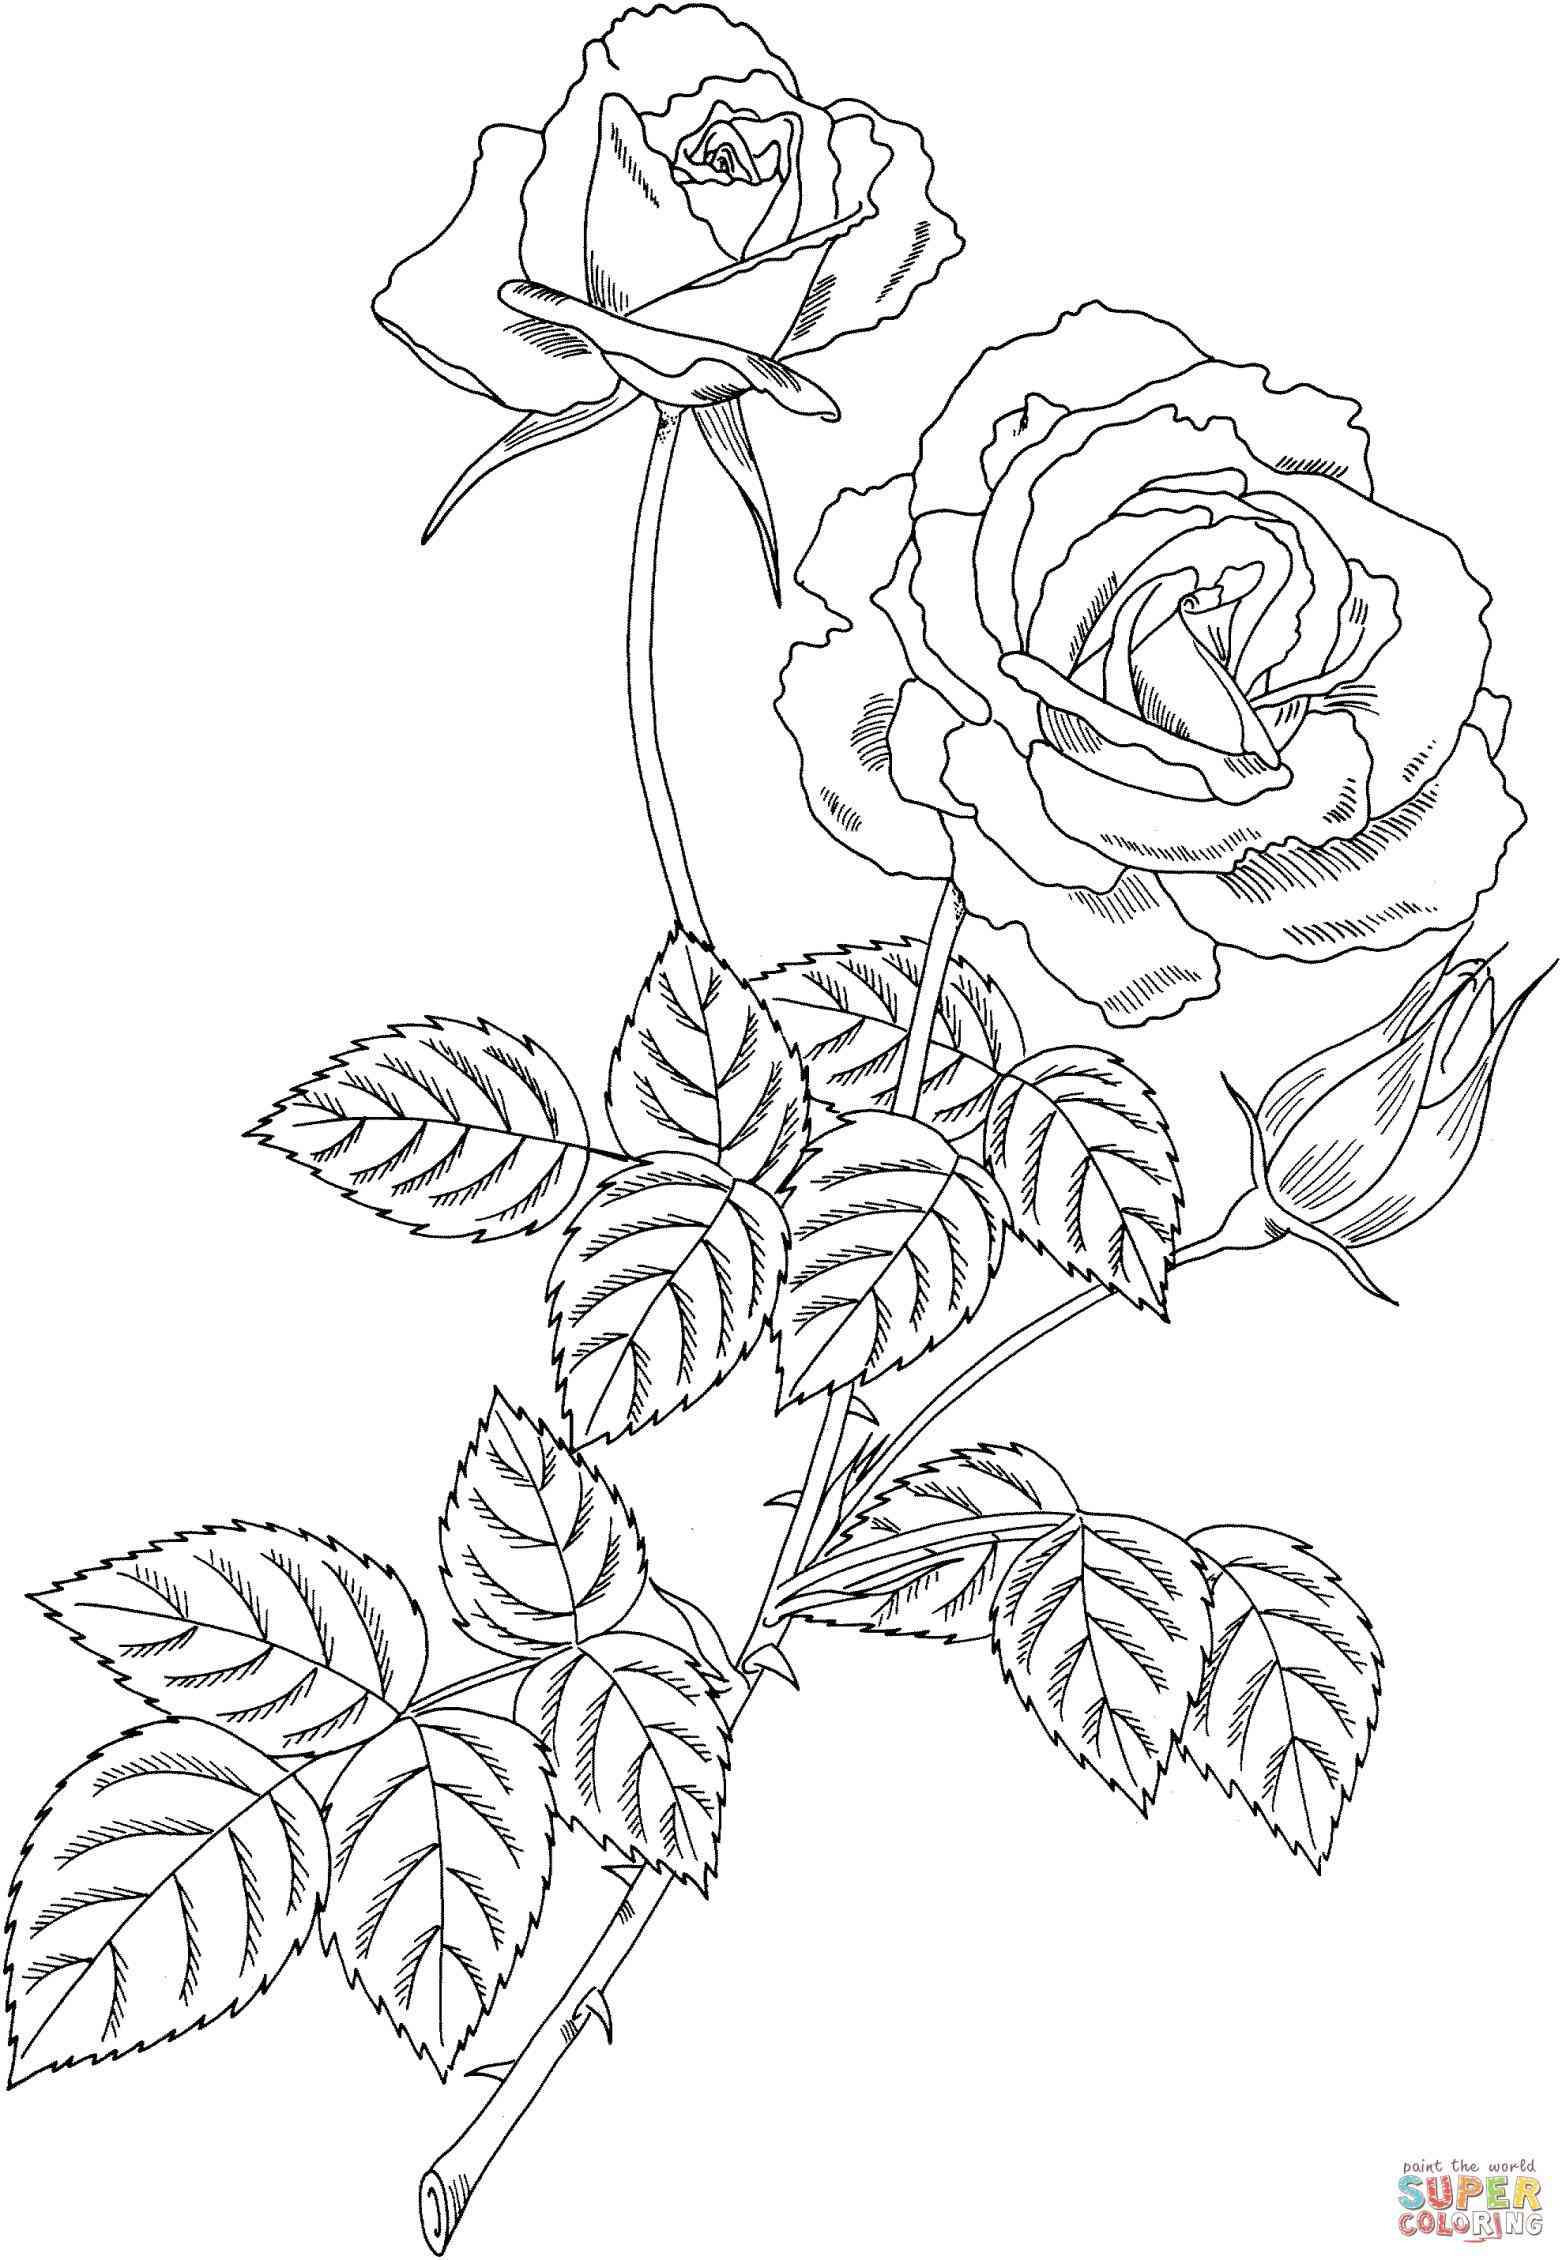 Yellow rose drawing at getdrawings free for personal use yellow rose drawing 8 yellow rose drawing